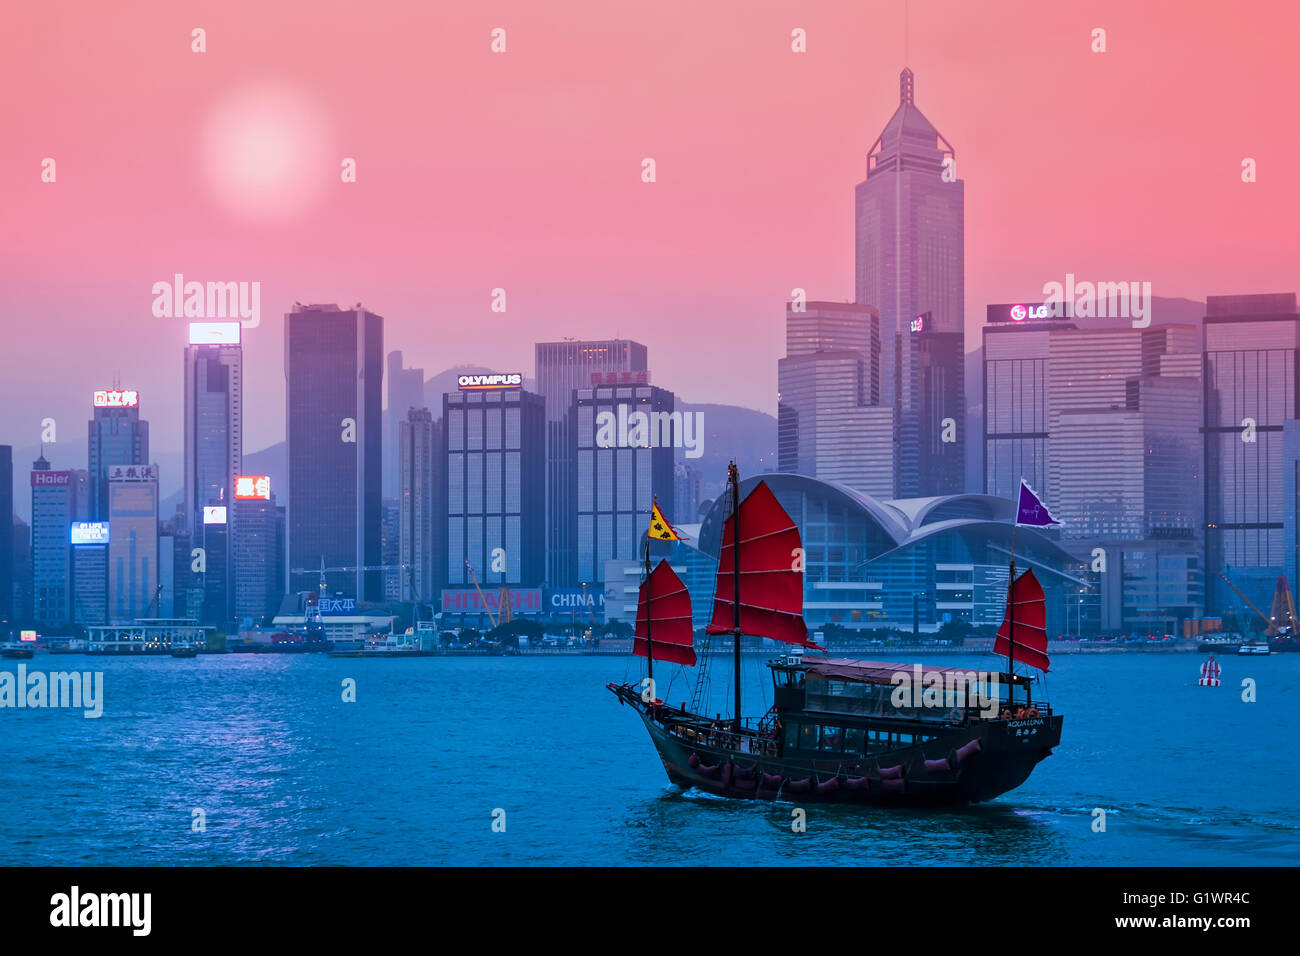 Junk Ship in Victoria Harbor in Hong Kong - Stock Image